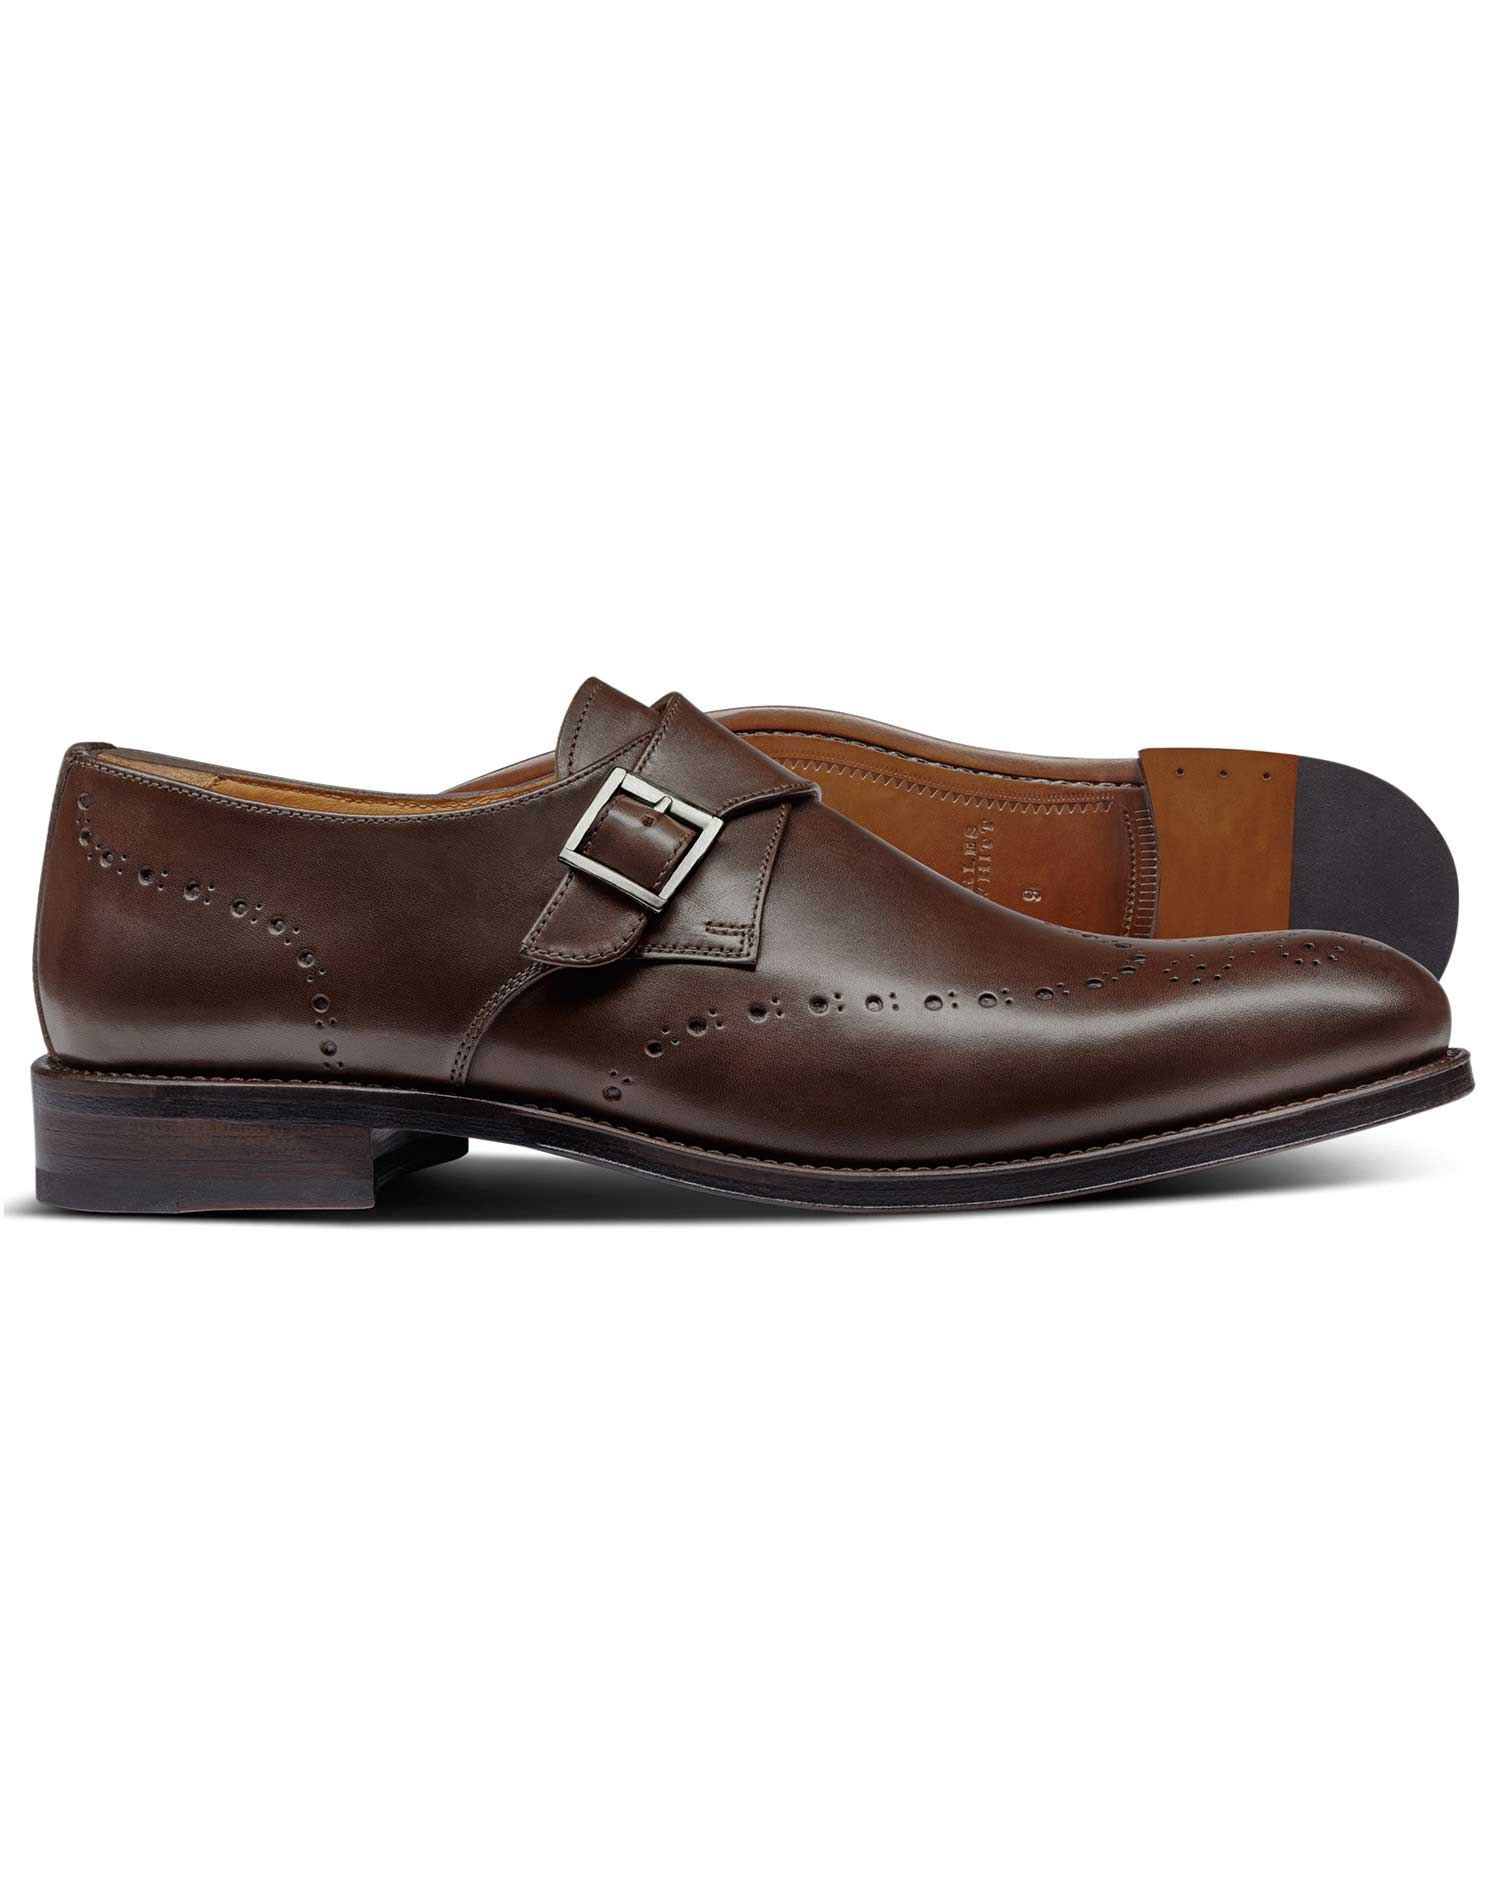 Chocolate Brogue Monk Shoes Size 7 R by Charles Tyrwhitt